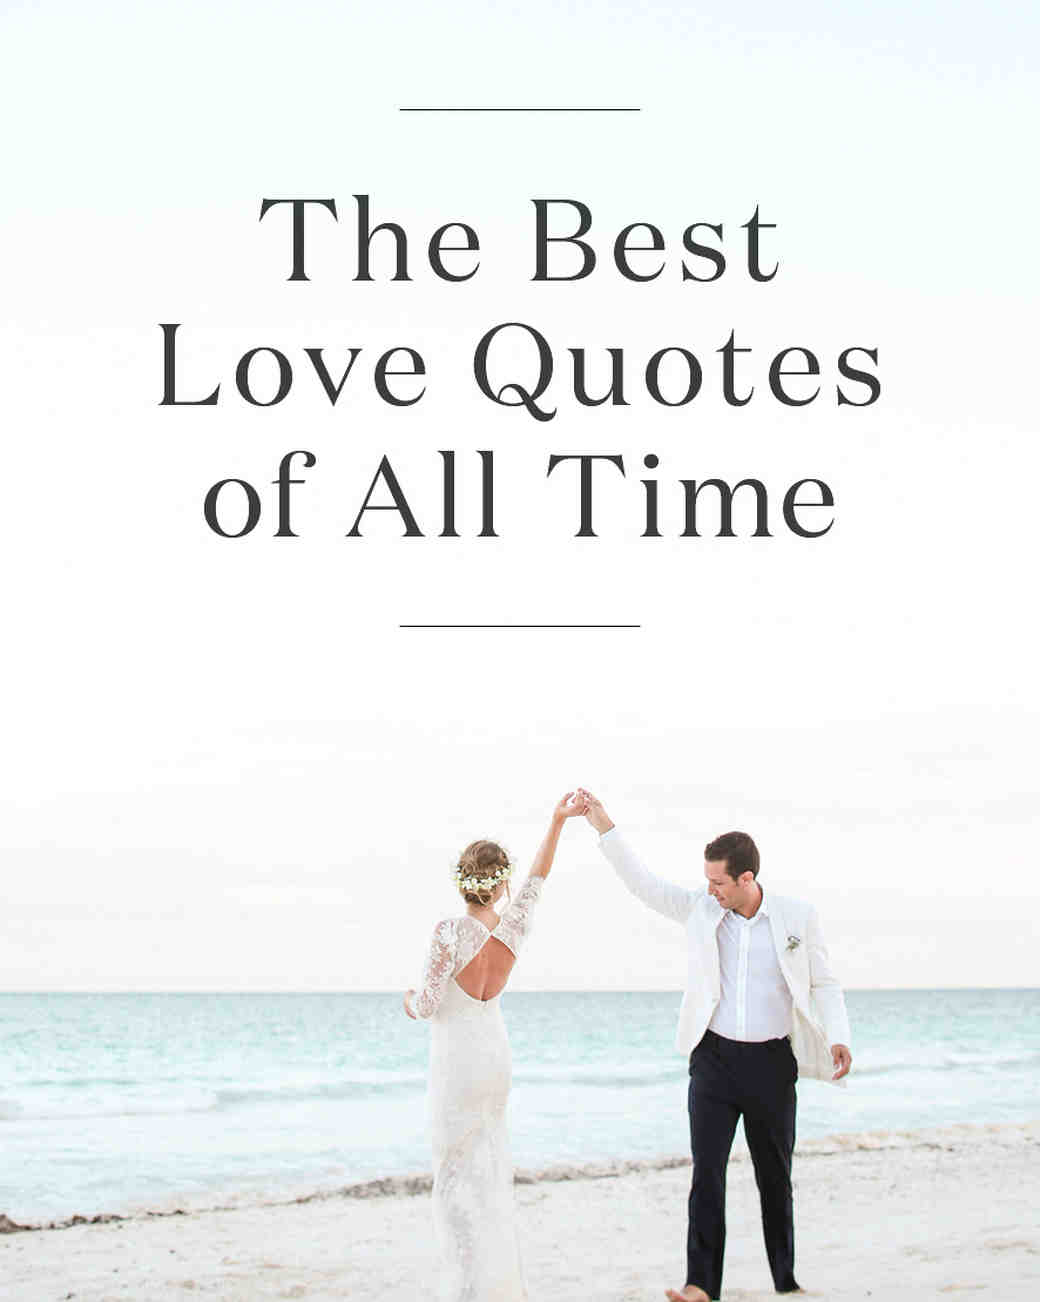 Love Marriage Quotes The 20 Best Love Quotes Of All Time  Martha Stewart Weddings